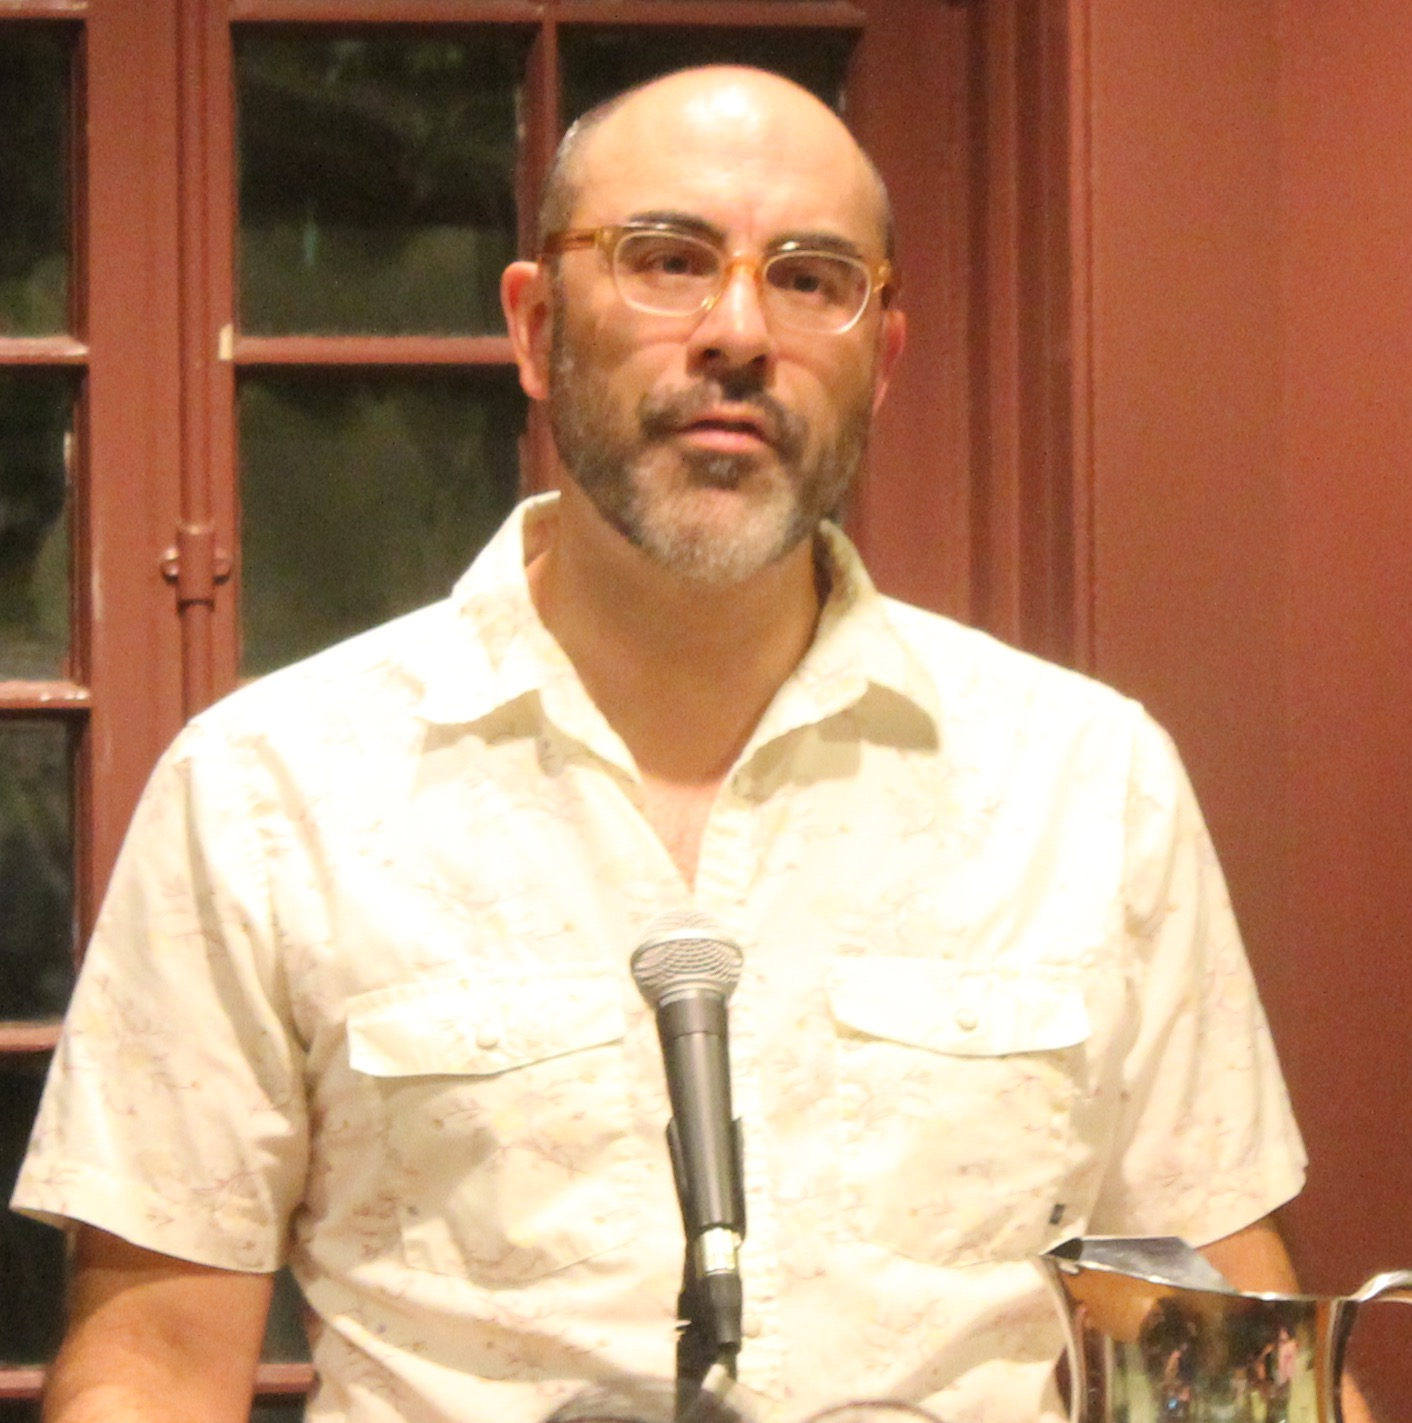 J. Robert Lennon speaking at the [[Kelly Writers House